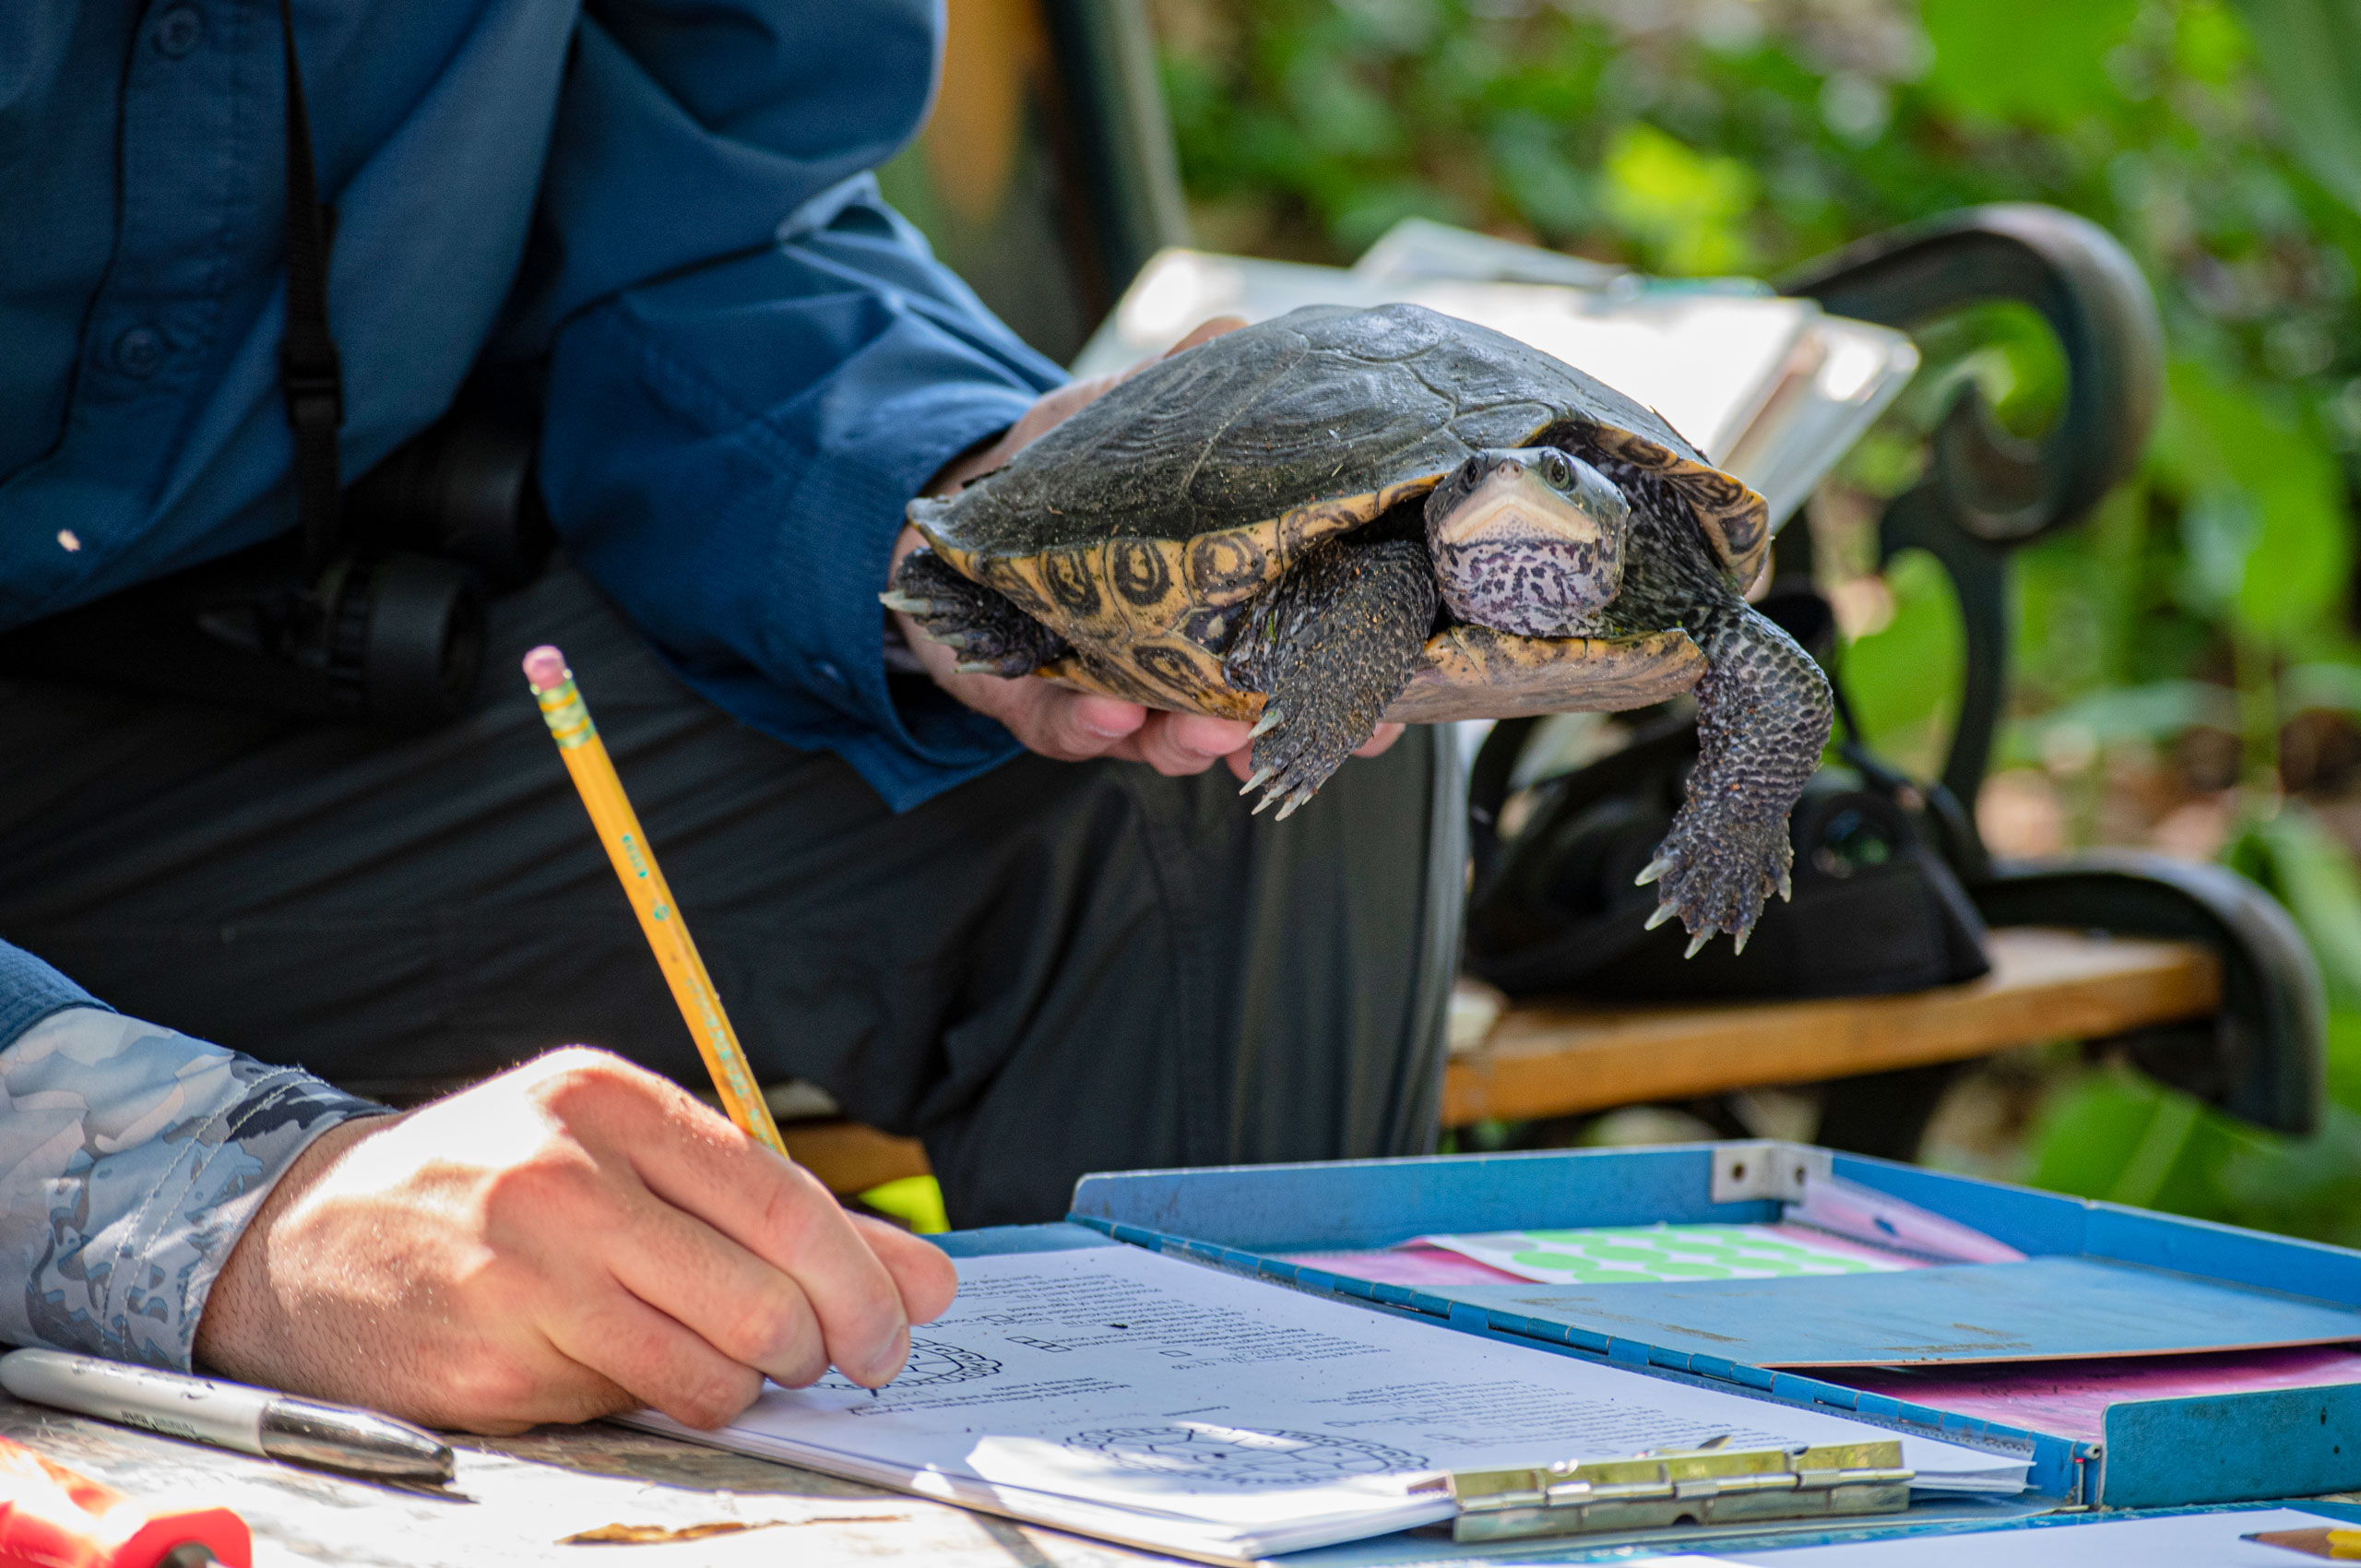 a student documents terrapin research